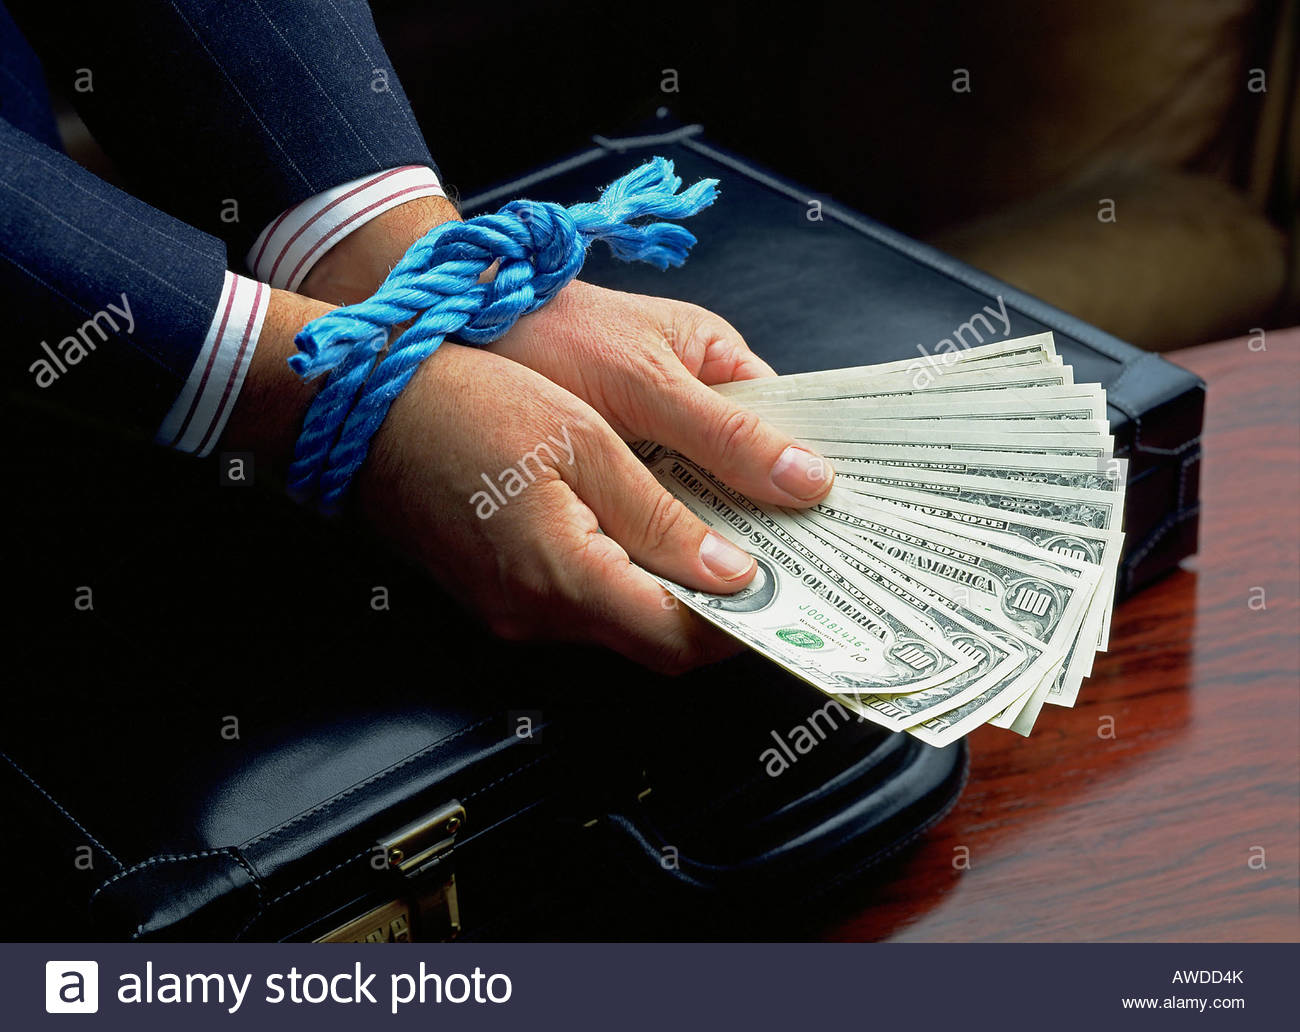 Man with wrists tied holding dollars - Stock Image